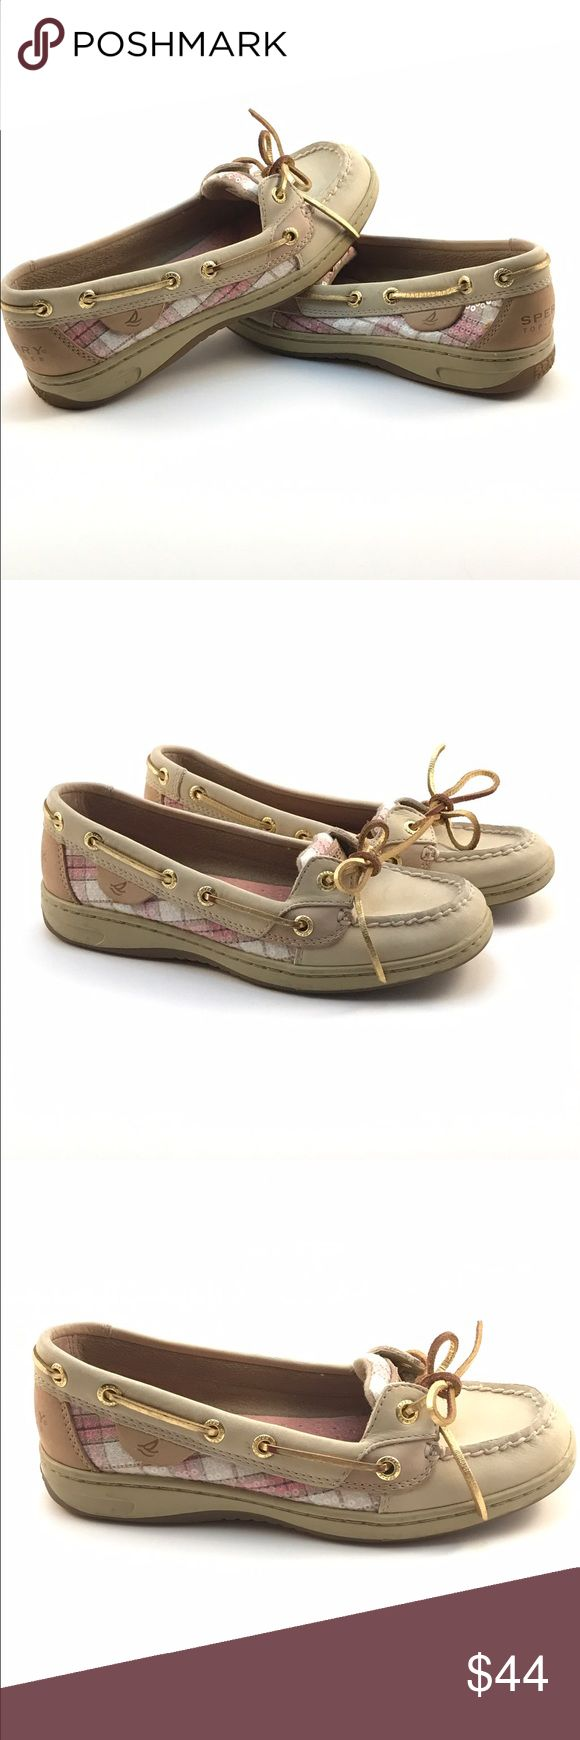 Women's Sperry Top Sider Angelfish Pink Plaid Only worn twice! Brand new looking Sperry Angelfish with a pink plaid sequin accent.  Get them before they're gone! Perfect for upcoming summer fun! Sperry Top-Sider Shoes Flats & Loafers